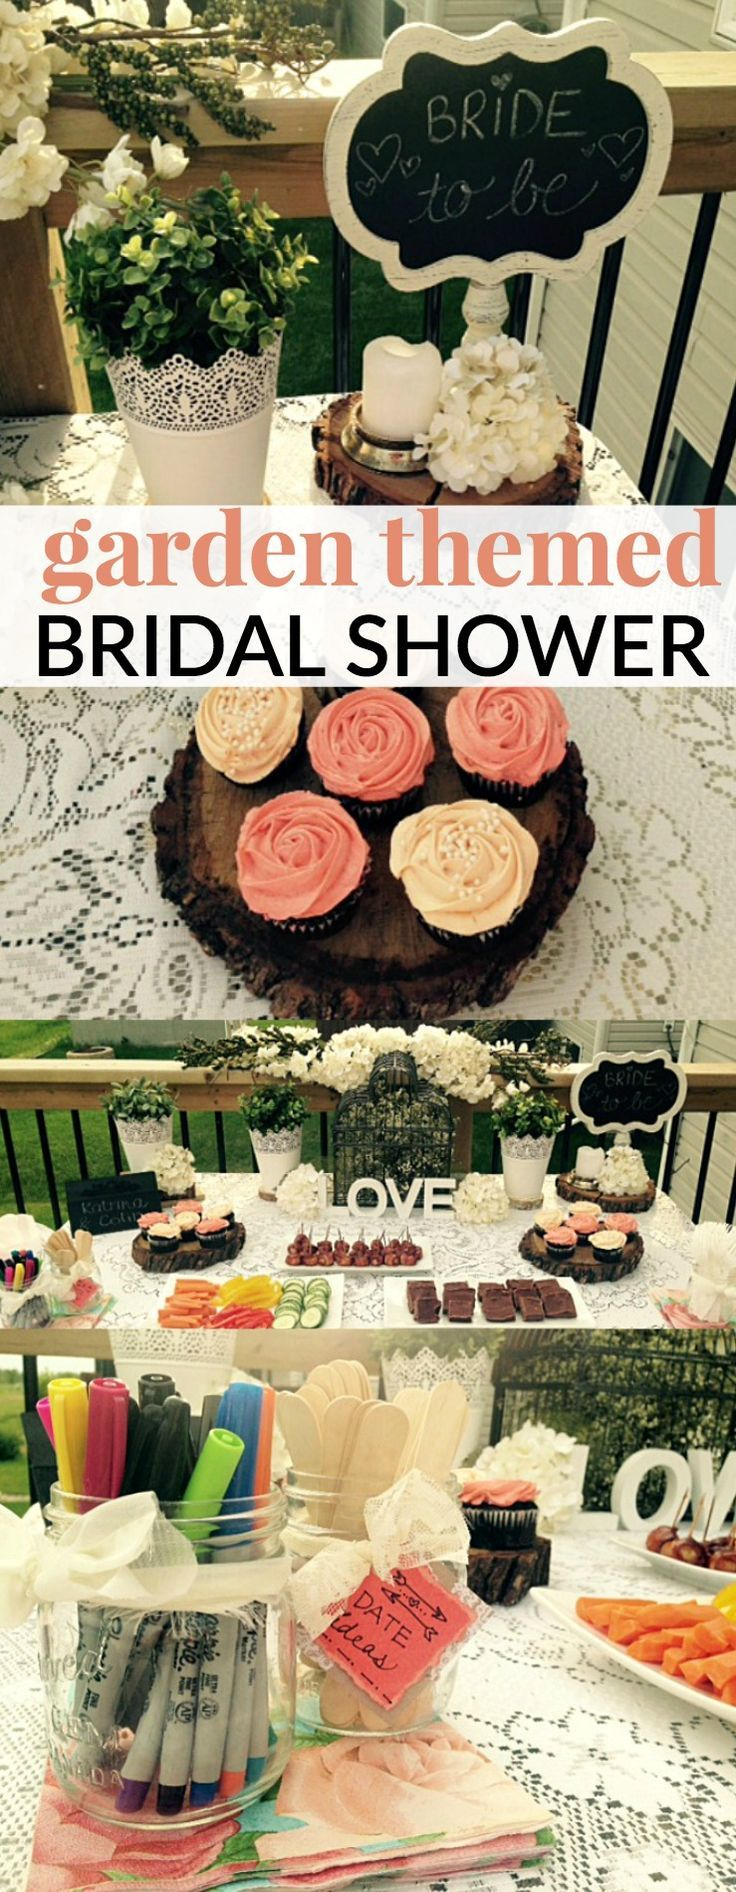 Bridal showers are a fun tradition that originated in the 1890s  as a way for family and friends to give gifts and well wishes.  Planning a surprise bridal shower is a lot of fun. This GARDEN THEMED BRIDAL SHOWER is perfect for summer brides!